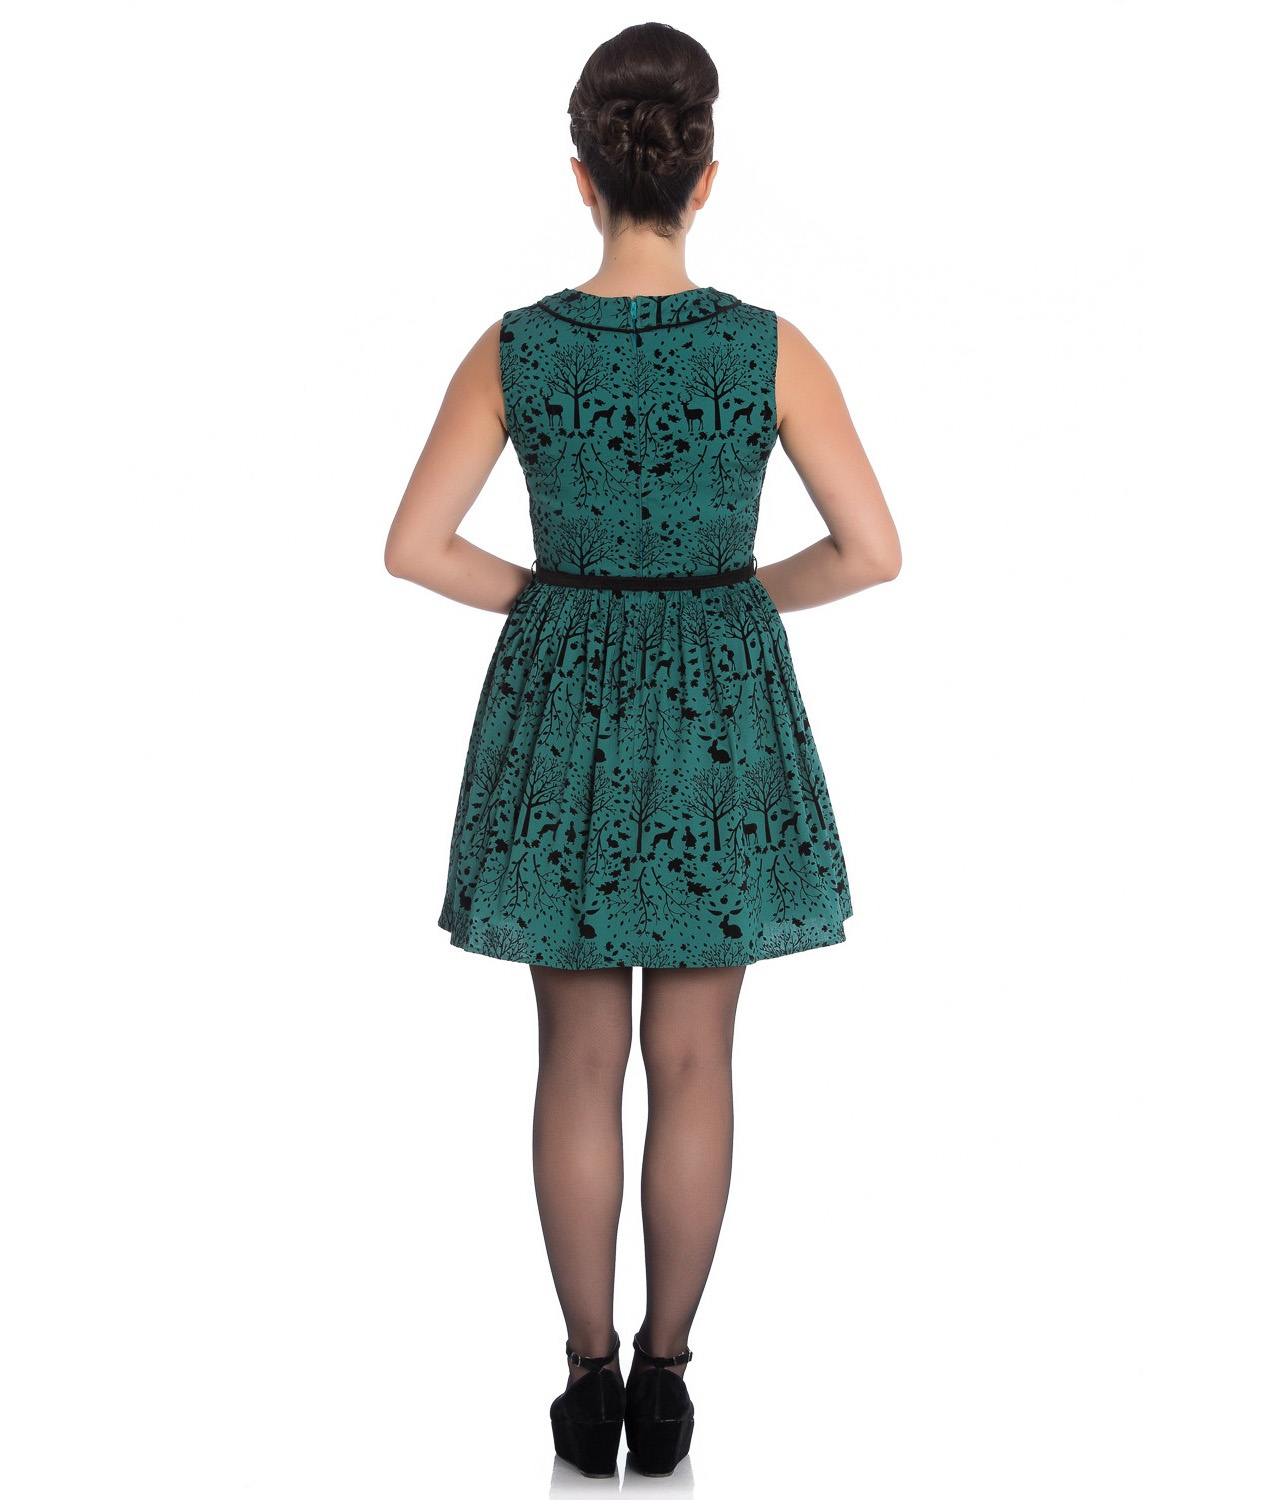 Hell-Bunny-50s-Mini-Skater-Dress-Woodland-Trees-SHERWOOD-Dark-Green-All-Sizes thumbnail 5